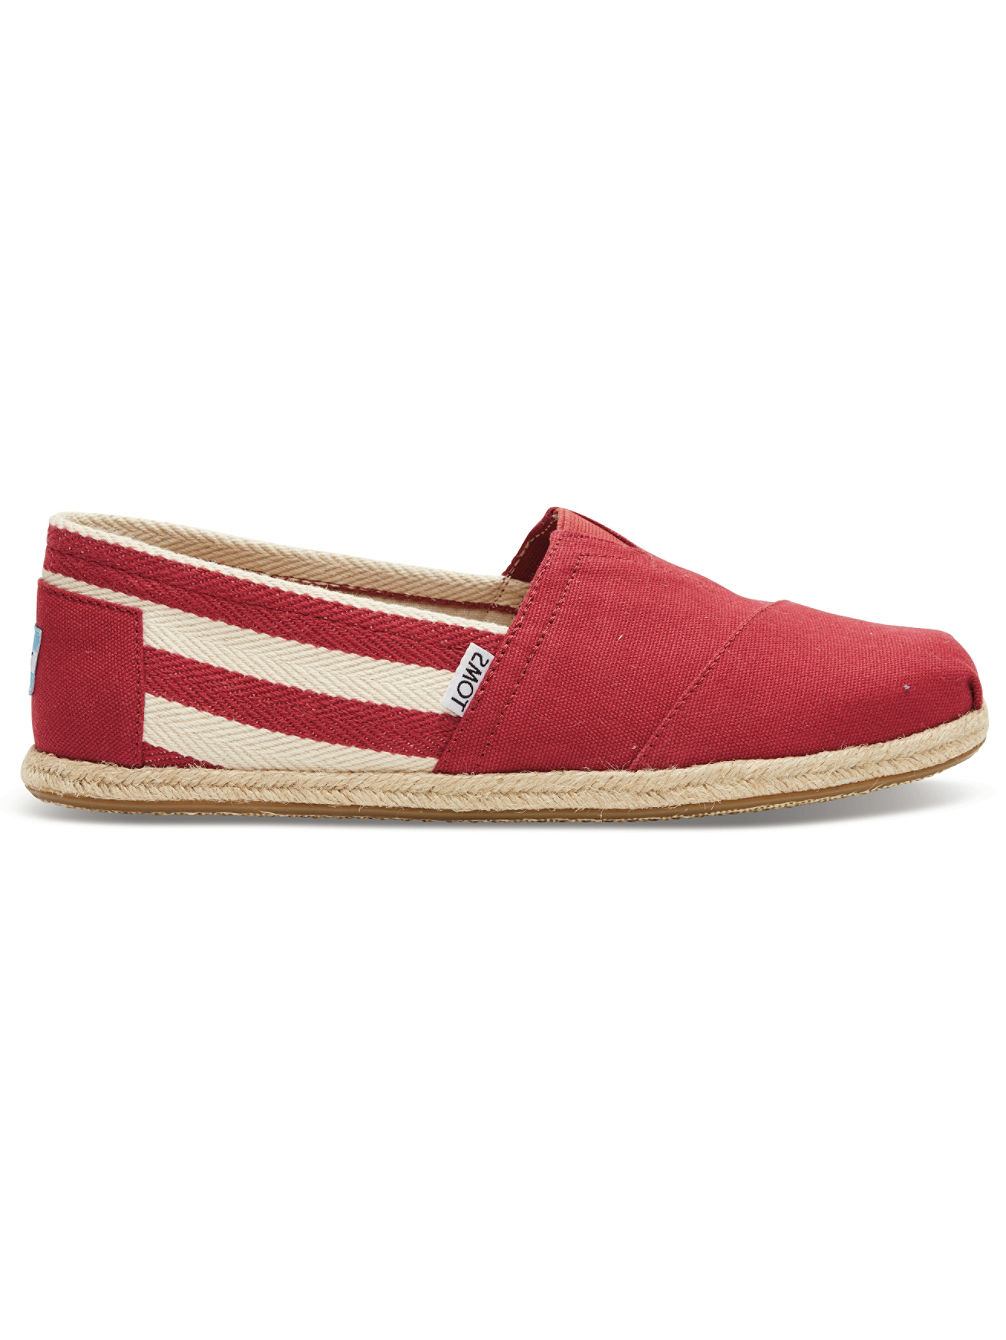 toms-university-classic-slippers